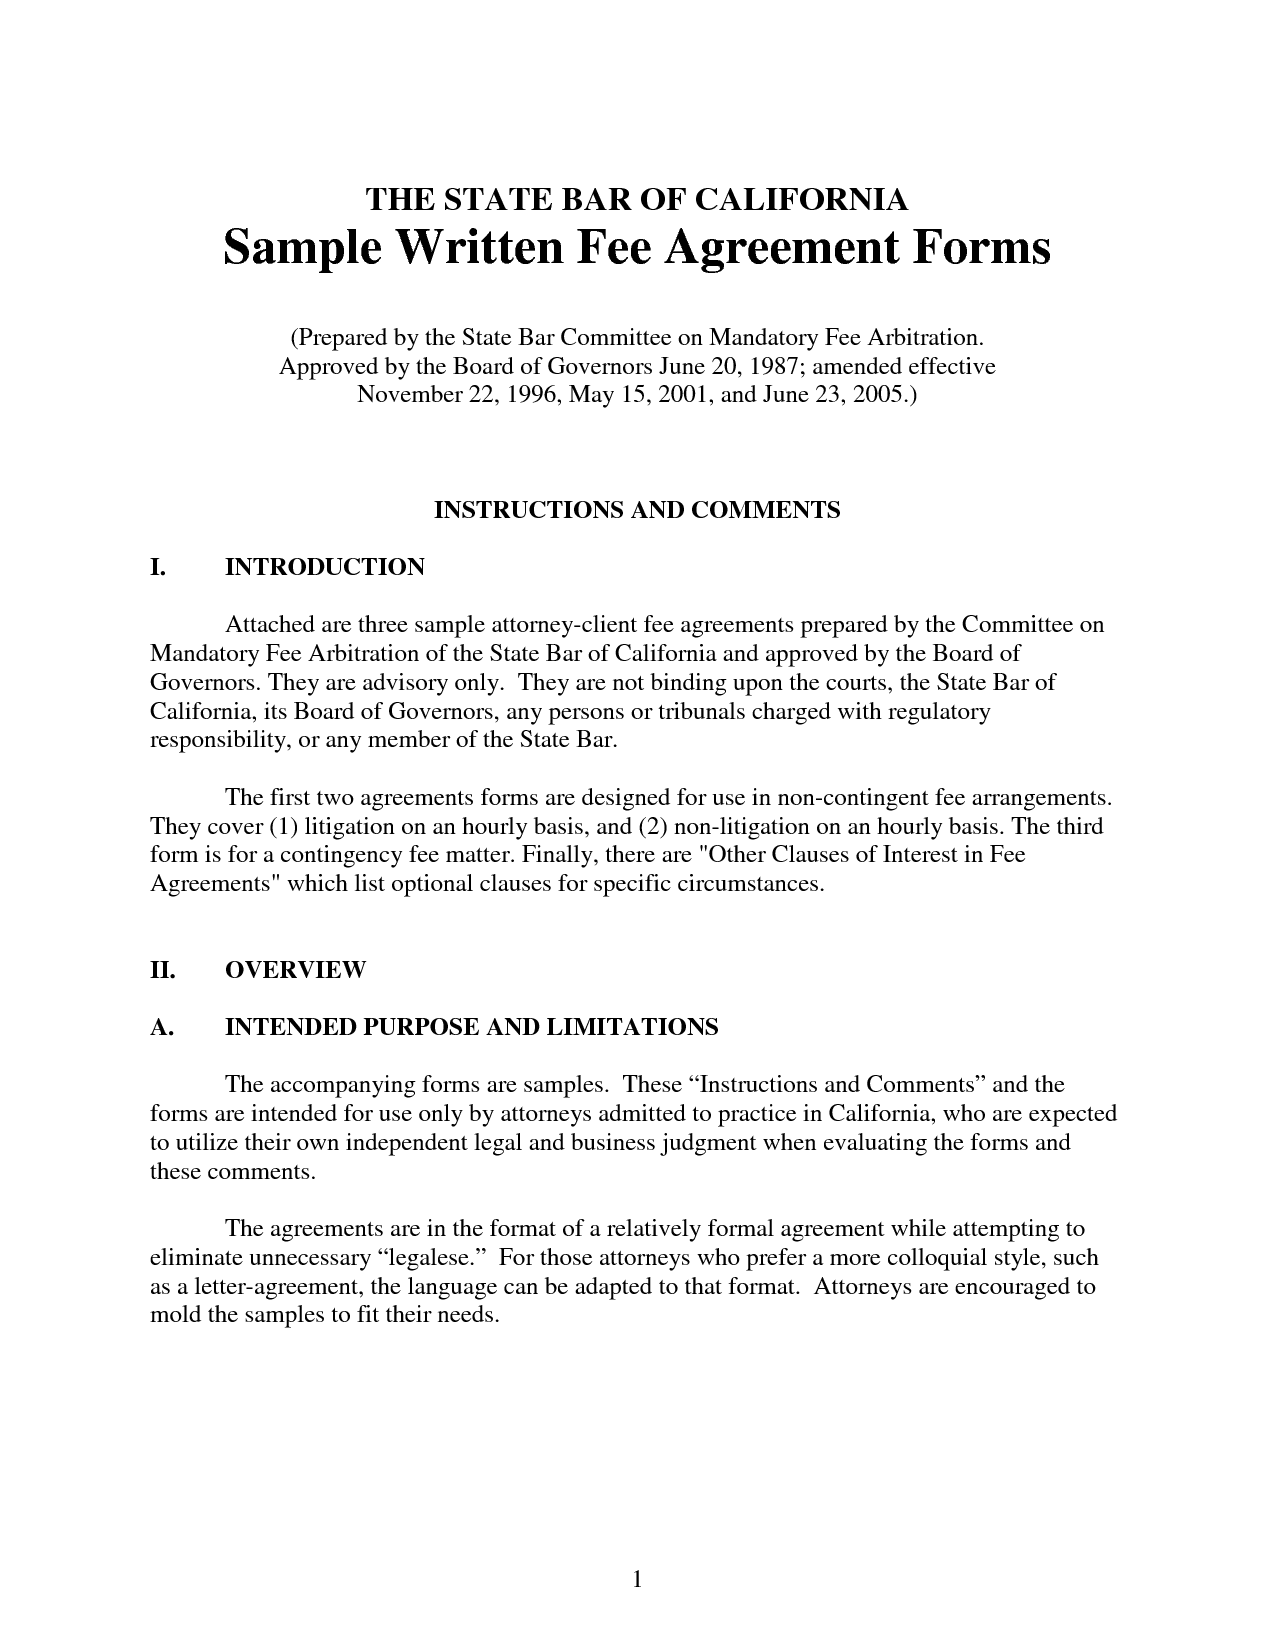 Legal Agreement Form By Tricky  Legal Agreement Forms  Real